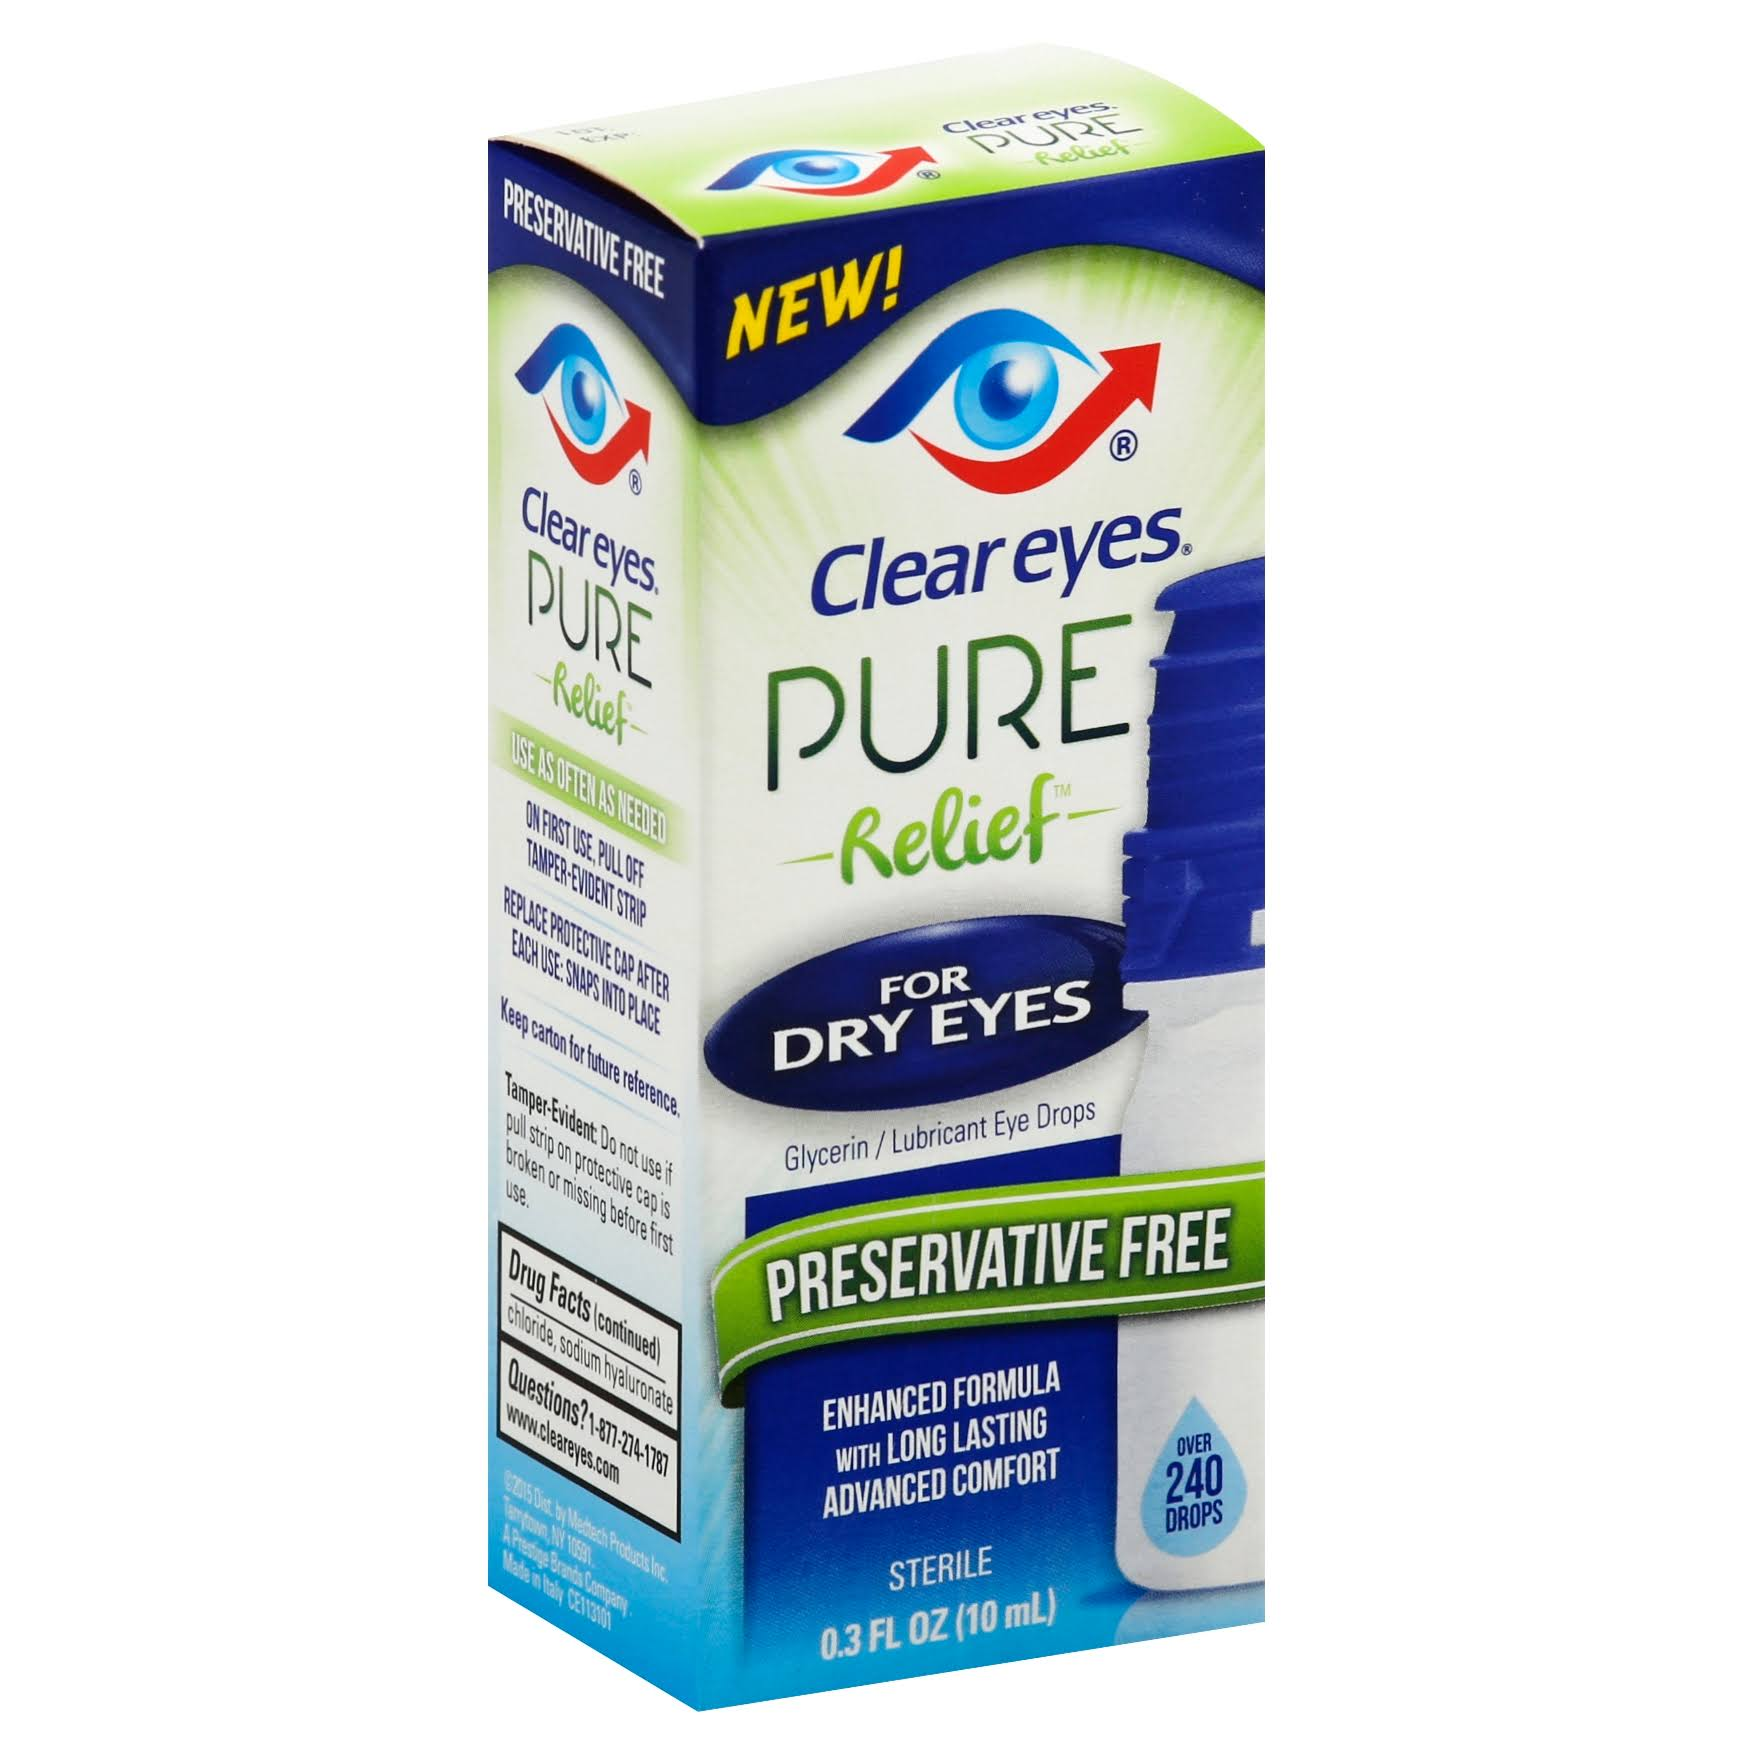 Clear Eyes Pure Relief Glycerin Lubricant Eye Drops - 10ml